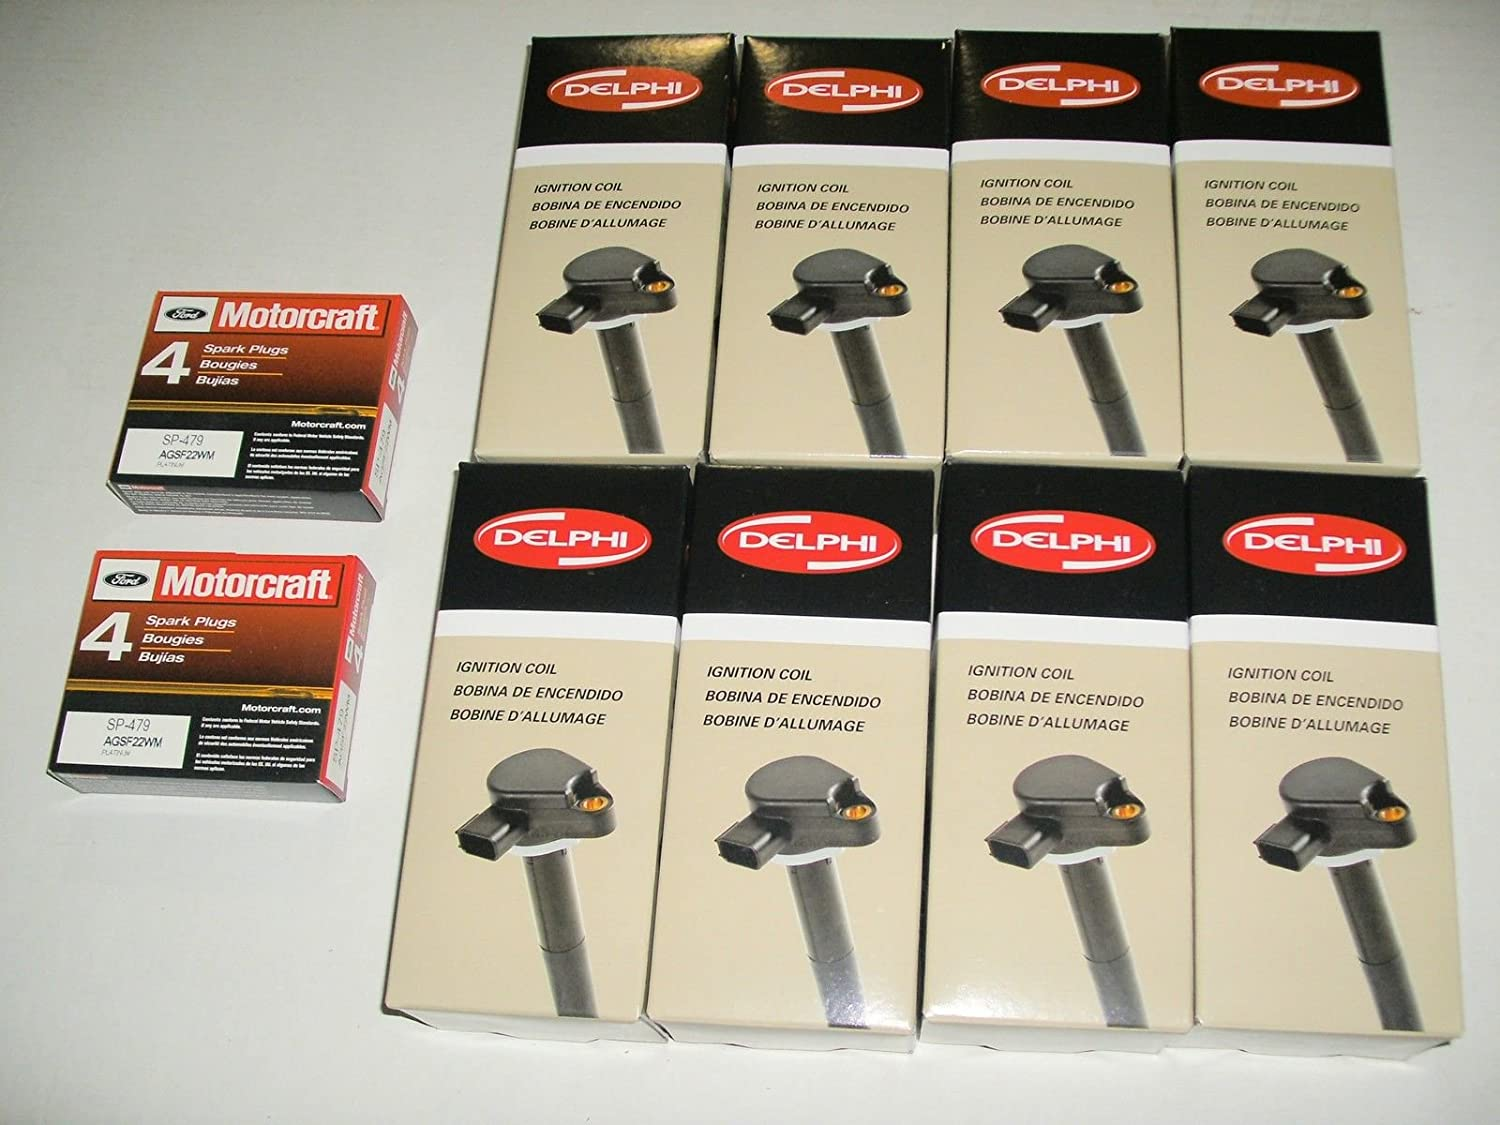 Amazon.com: Set of All 8 Delphi Ignition Coils & 8 Motorcraft Platinum Plugs Sp479 New: Automotive